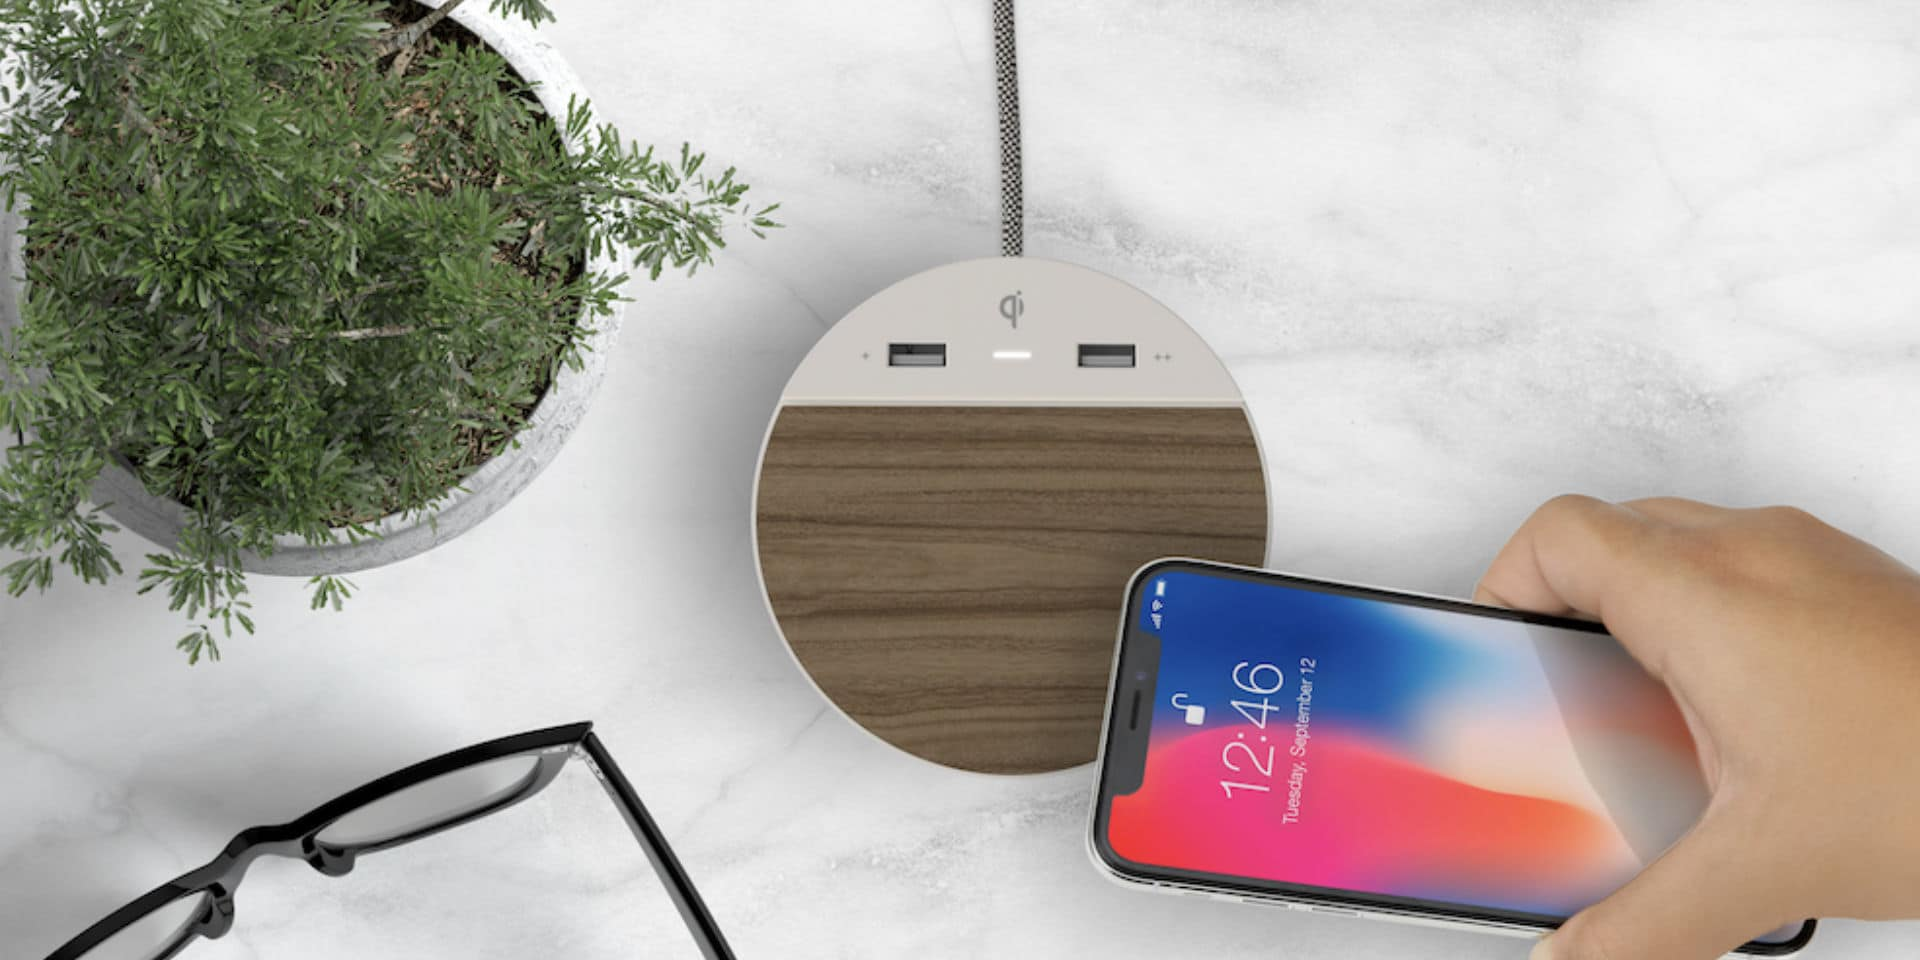 Three reasons why these clock/chargers are gaining ground in bed rooms of top hotels